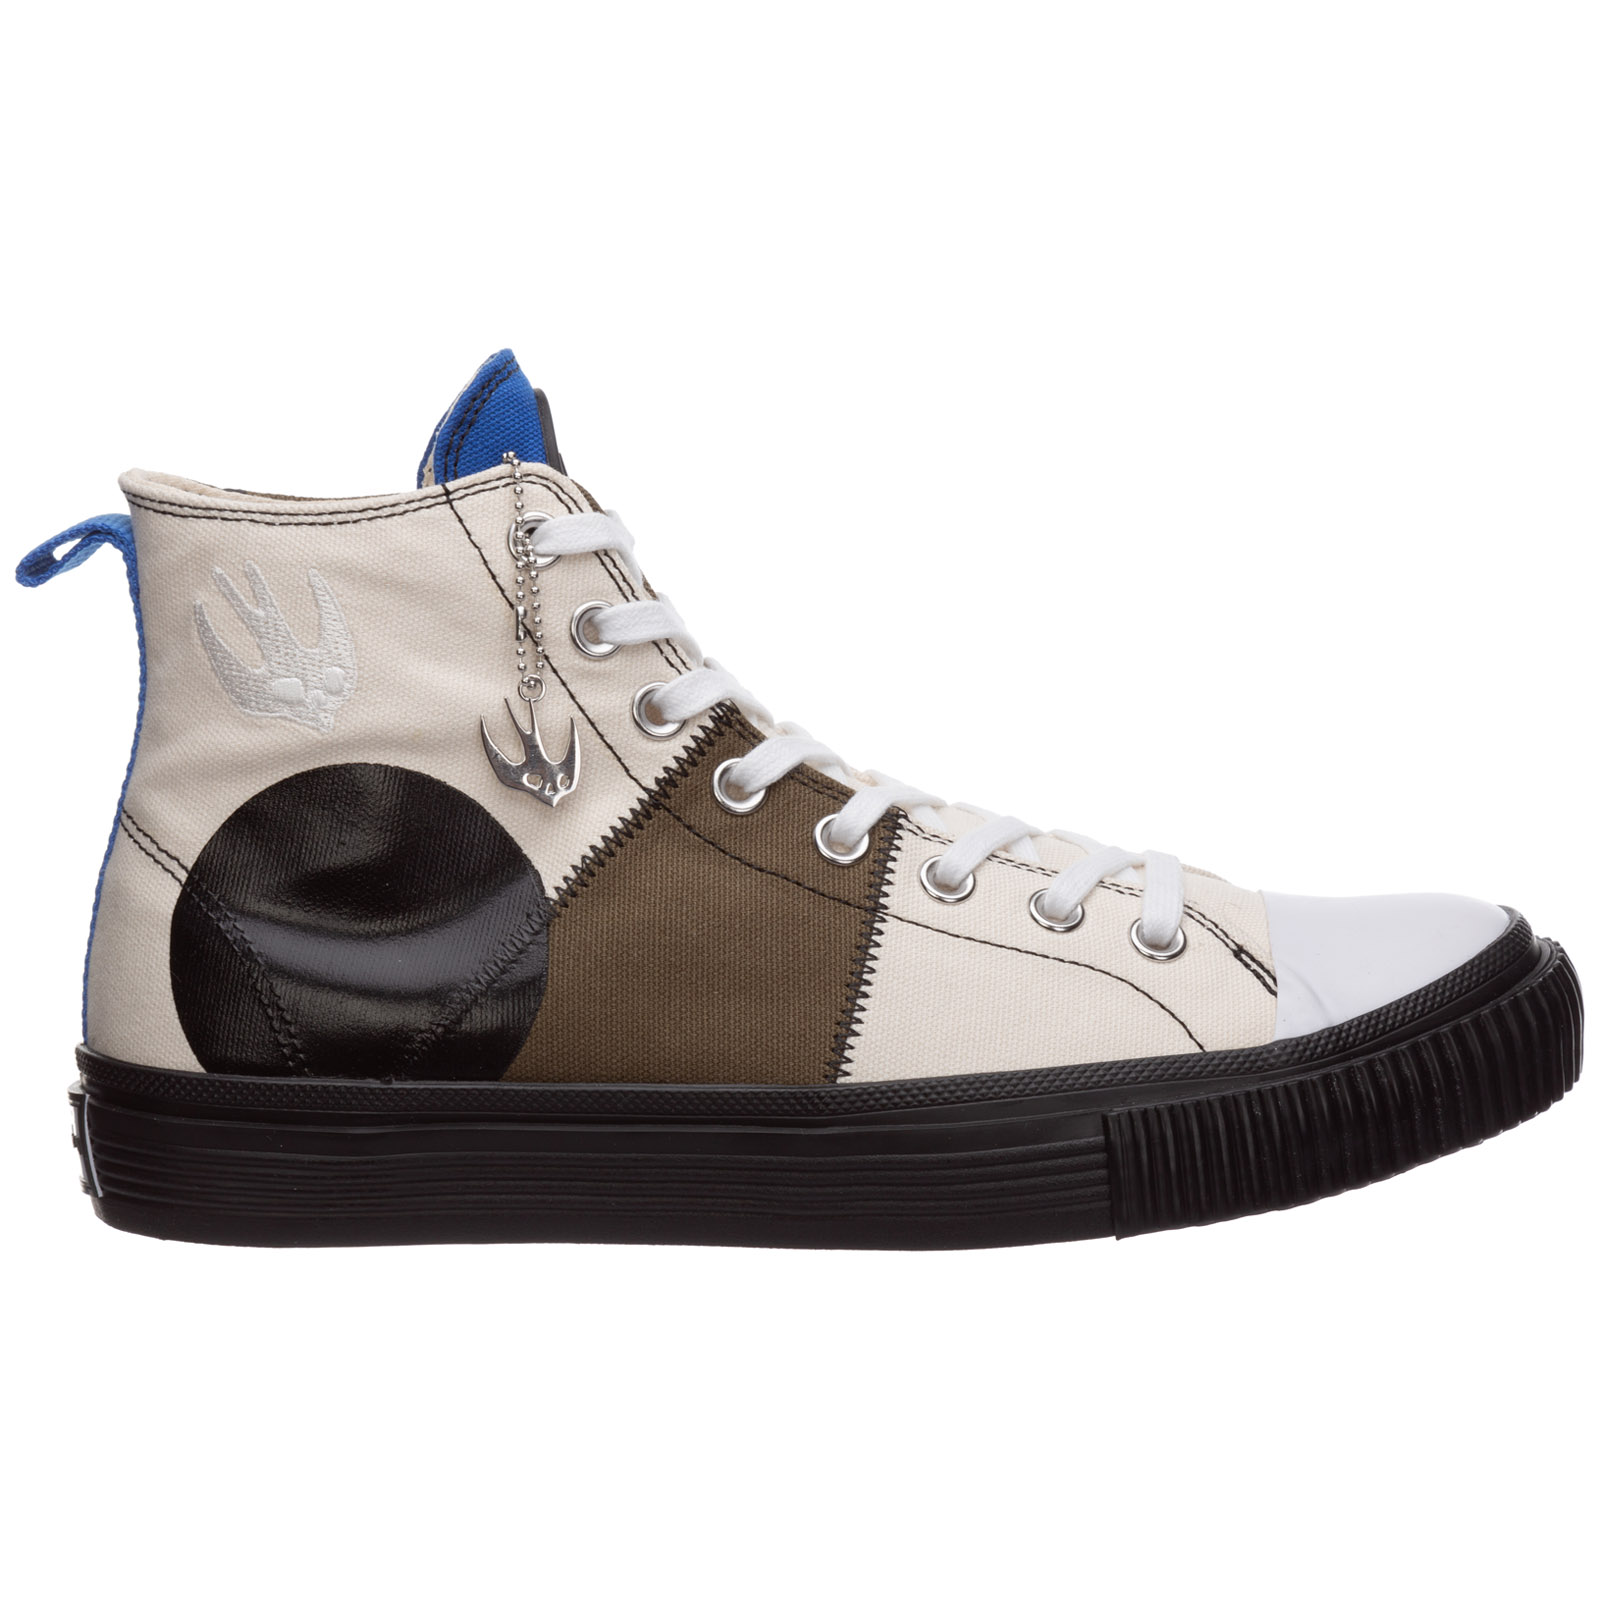 Mcq By Alexander Mcqueen MEN'S SHOES HIGH TOP LEATHER TRAINERS SNEAKERS SWALLOW CAPSULE